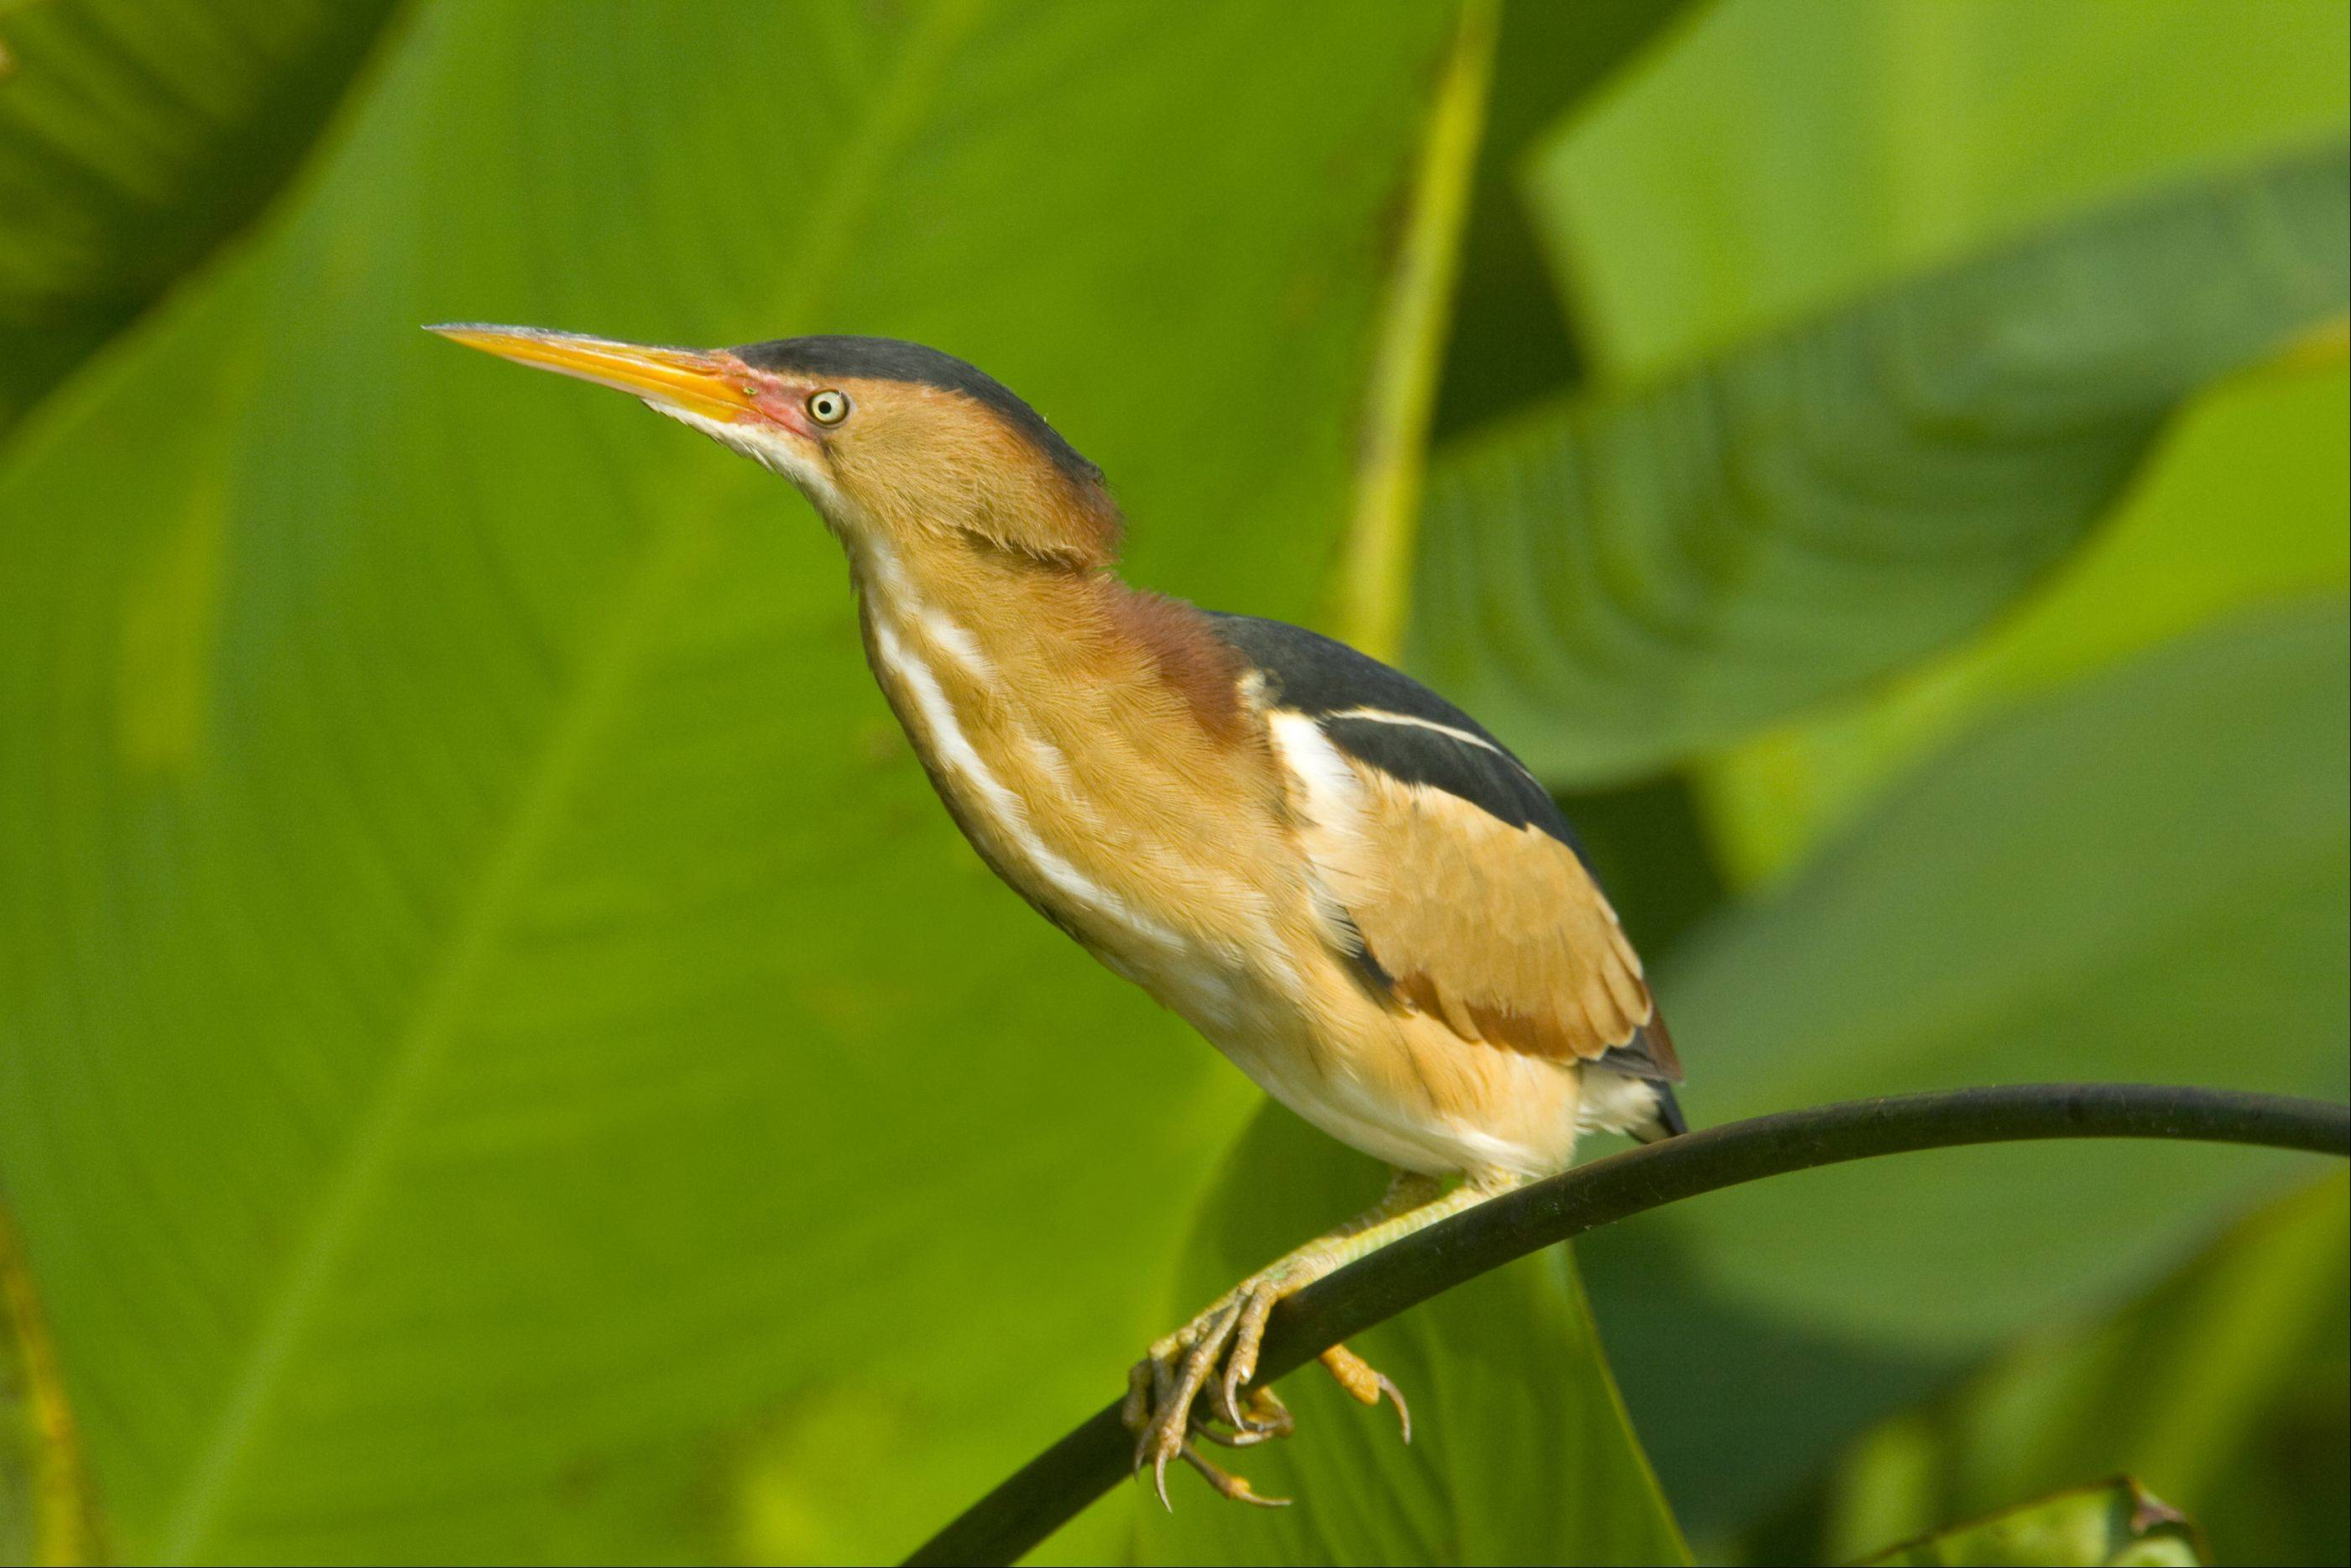 A male Least Bittern (Ixobrychus exilis) is perched on vegetation. The birds are among the threatened species in Cook and Lake counties.